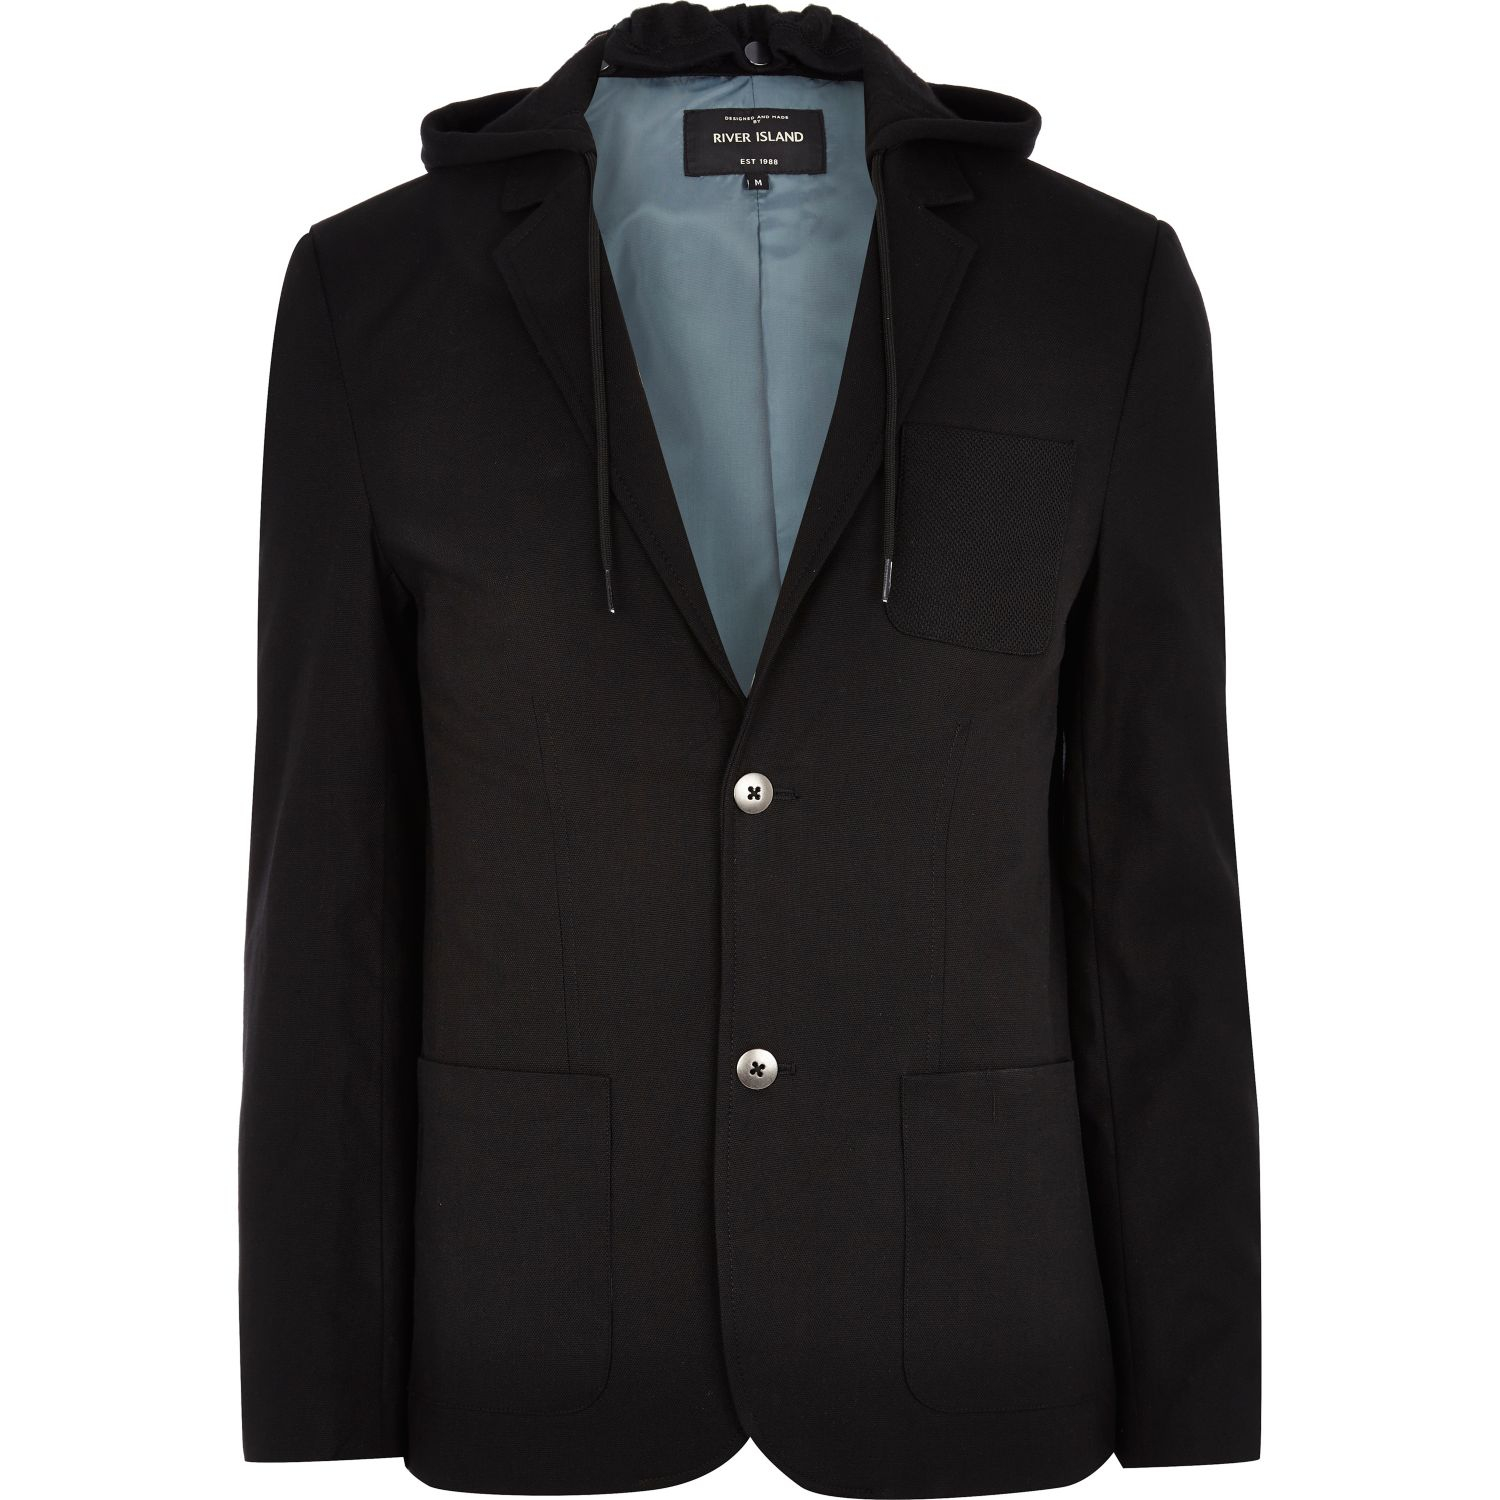 Blazers And Jackets: Hooded Blazers On Pinterest